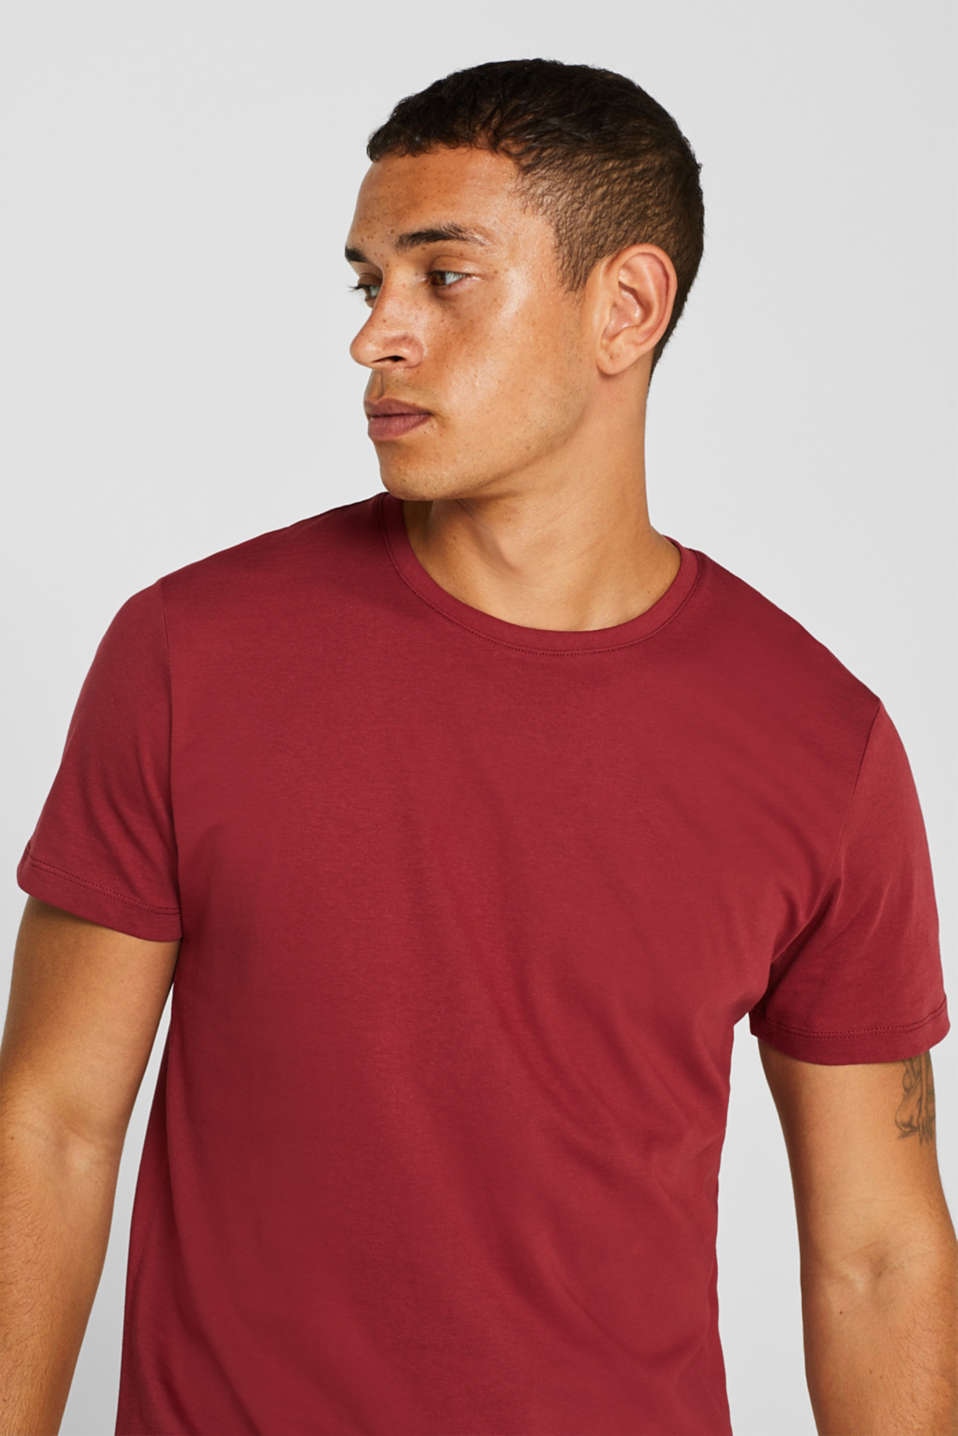 Jersey T-shirt in 100% cotton, BORDEAUX RED 2, detail image number 1